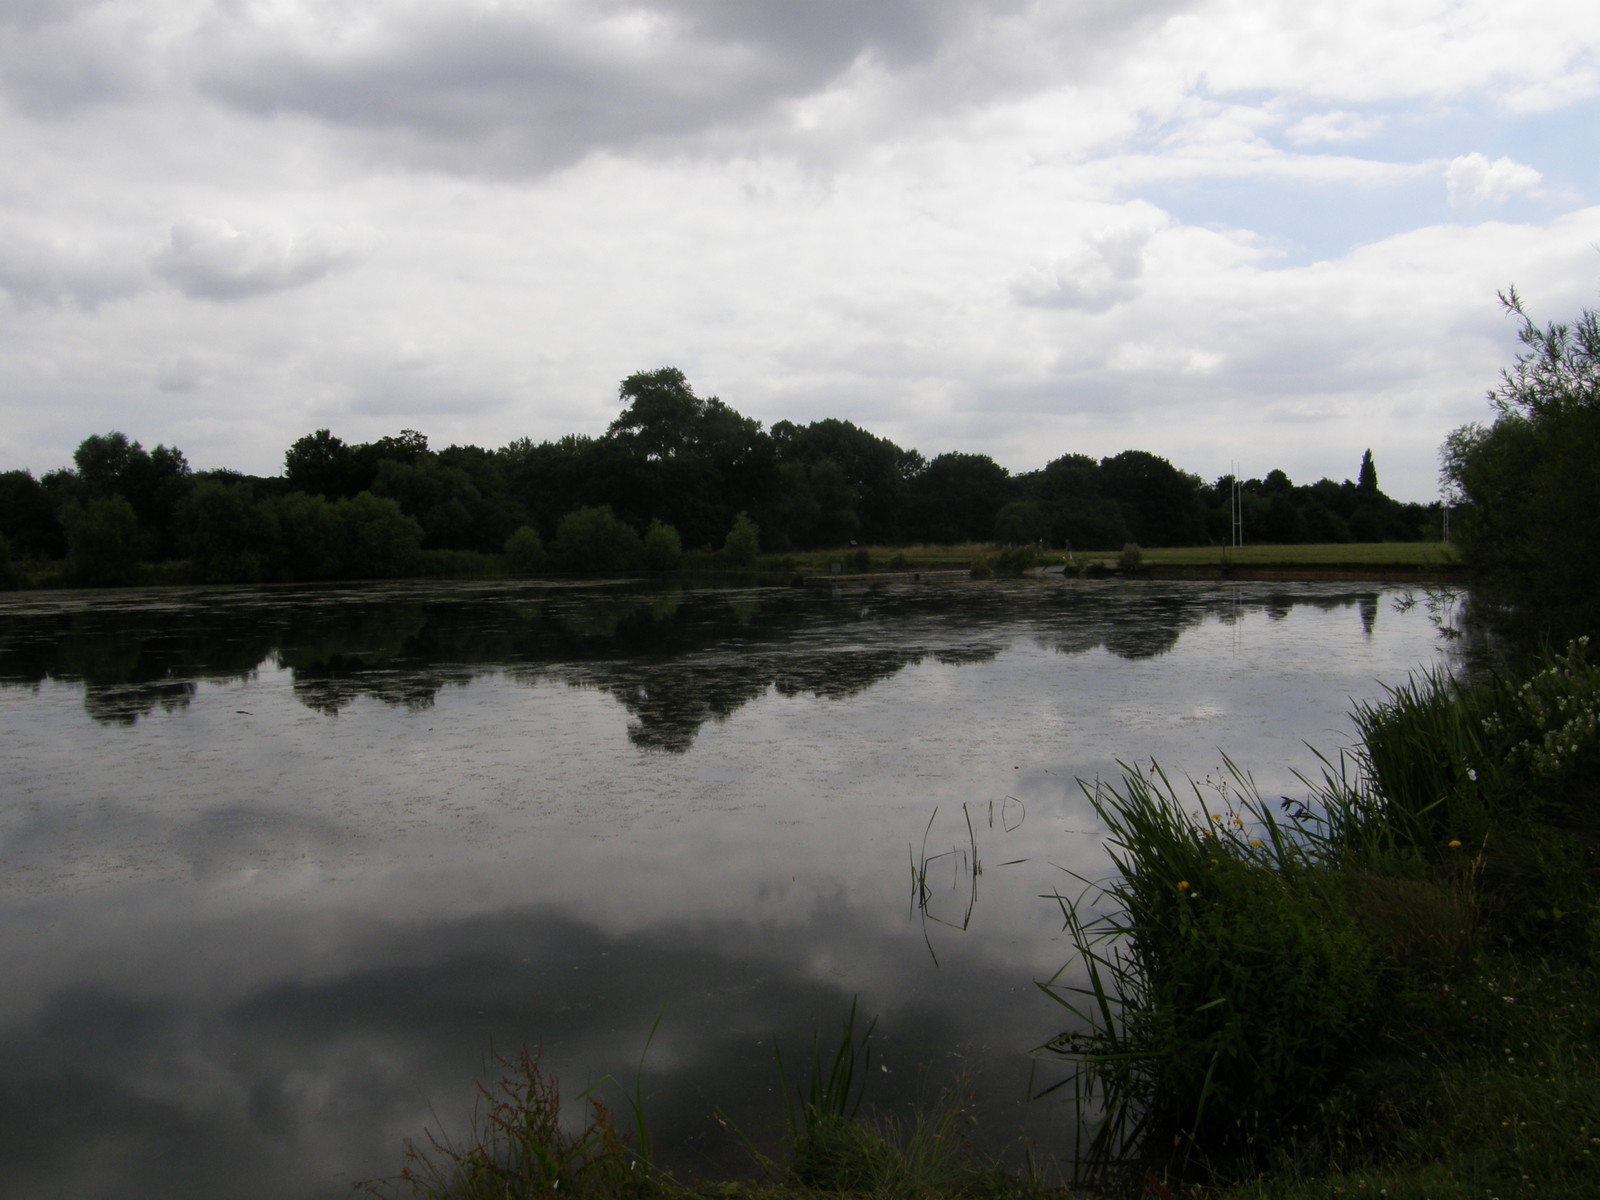 Lake scenery by the River Roding